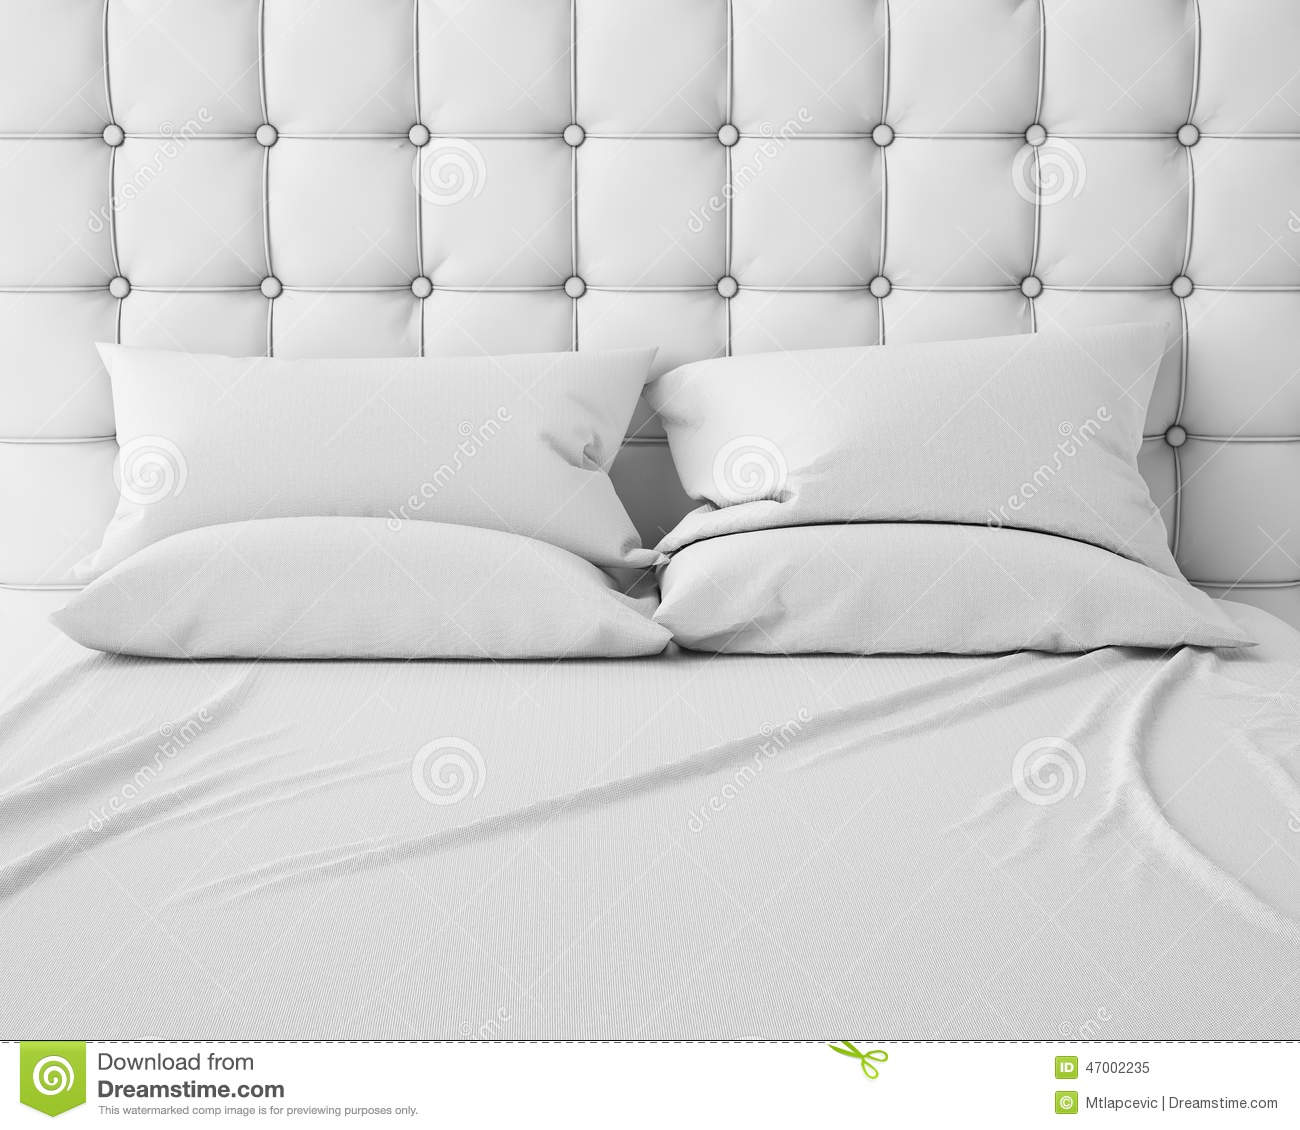 1 Bedroom Apartment Setup Empty Bedroom Background Bedroom Romance Images Bedroom Apartment: Empty White Bed And Pillows With Luxury Headboard Stock